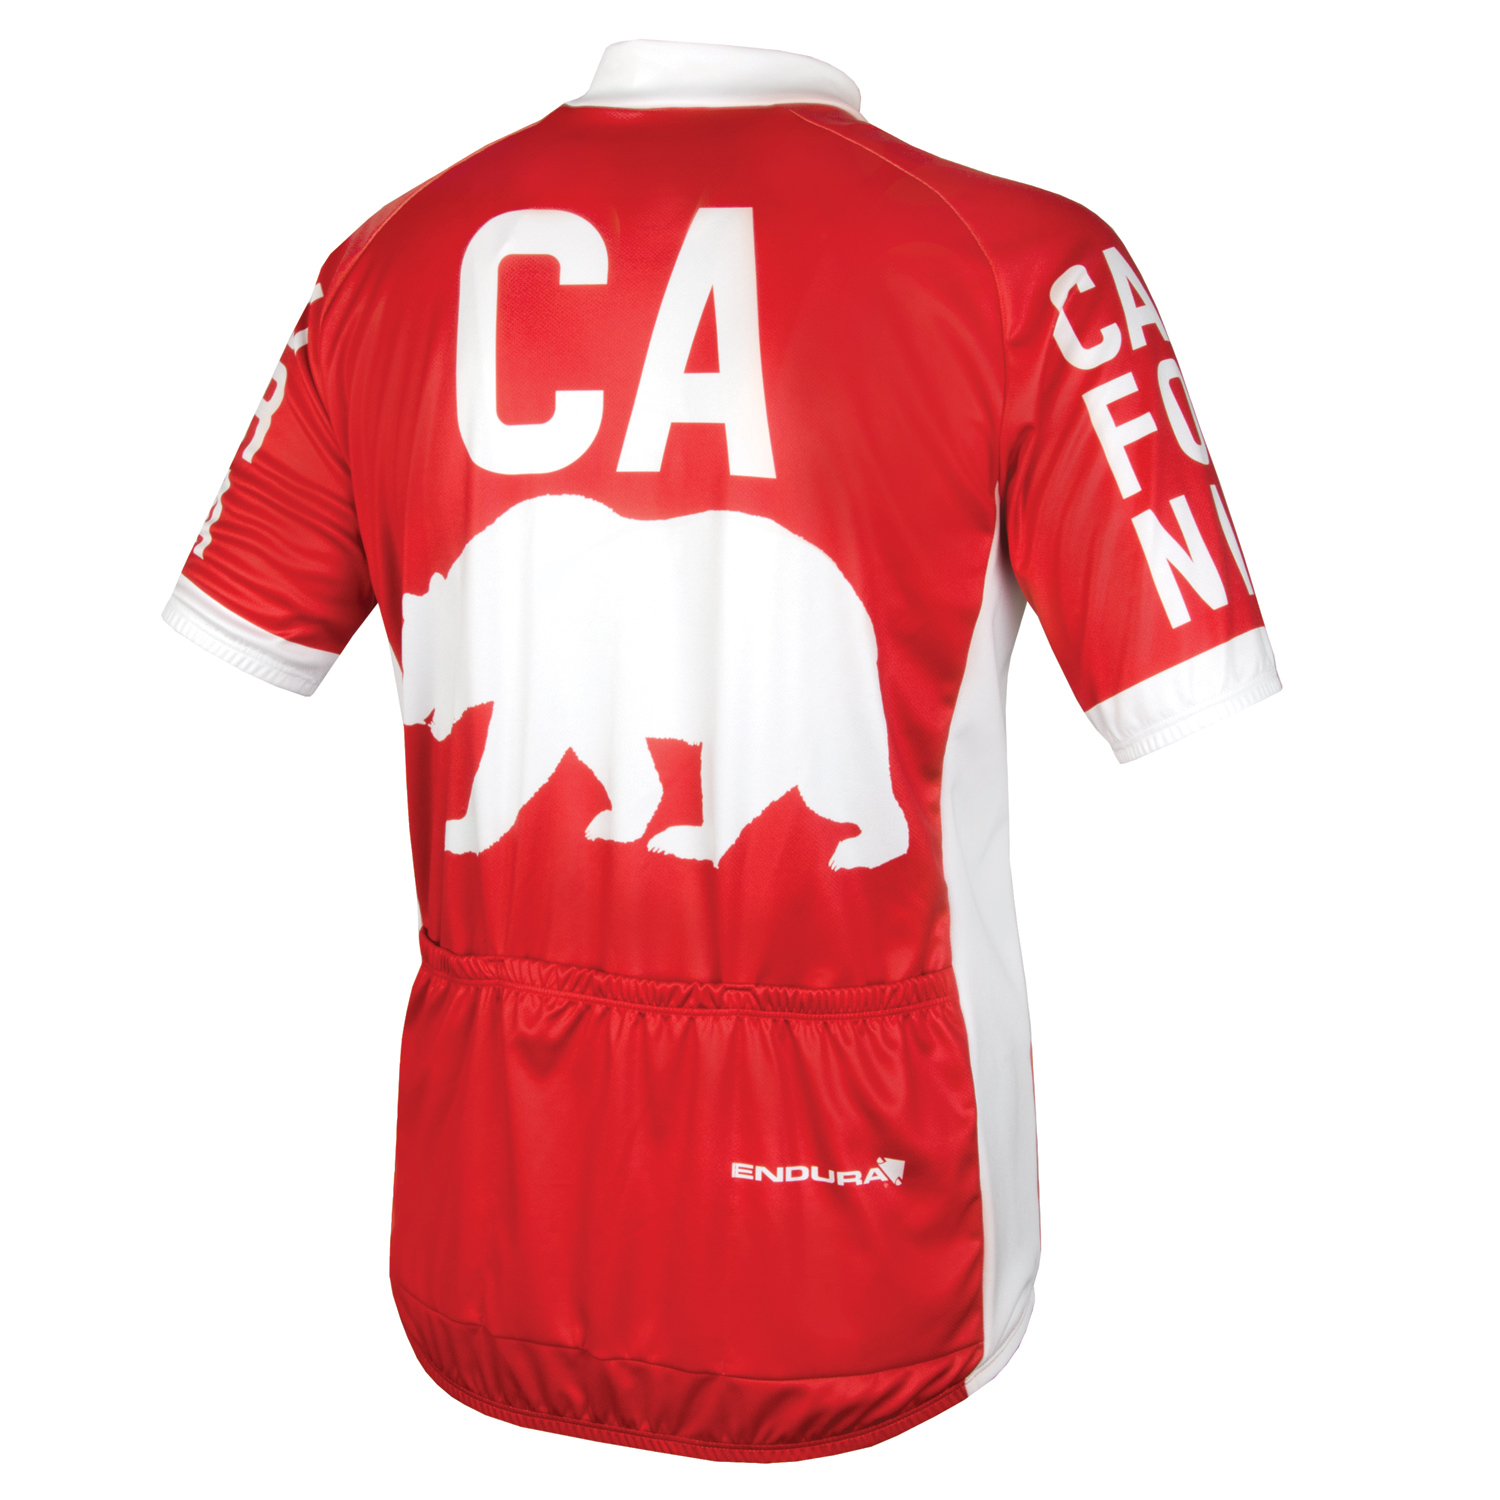 California SS Jersey  Red